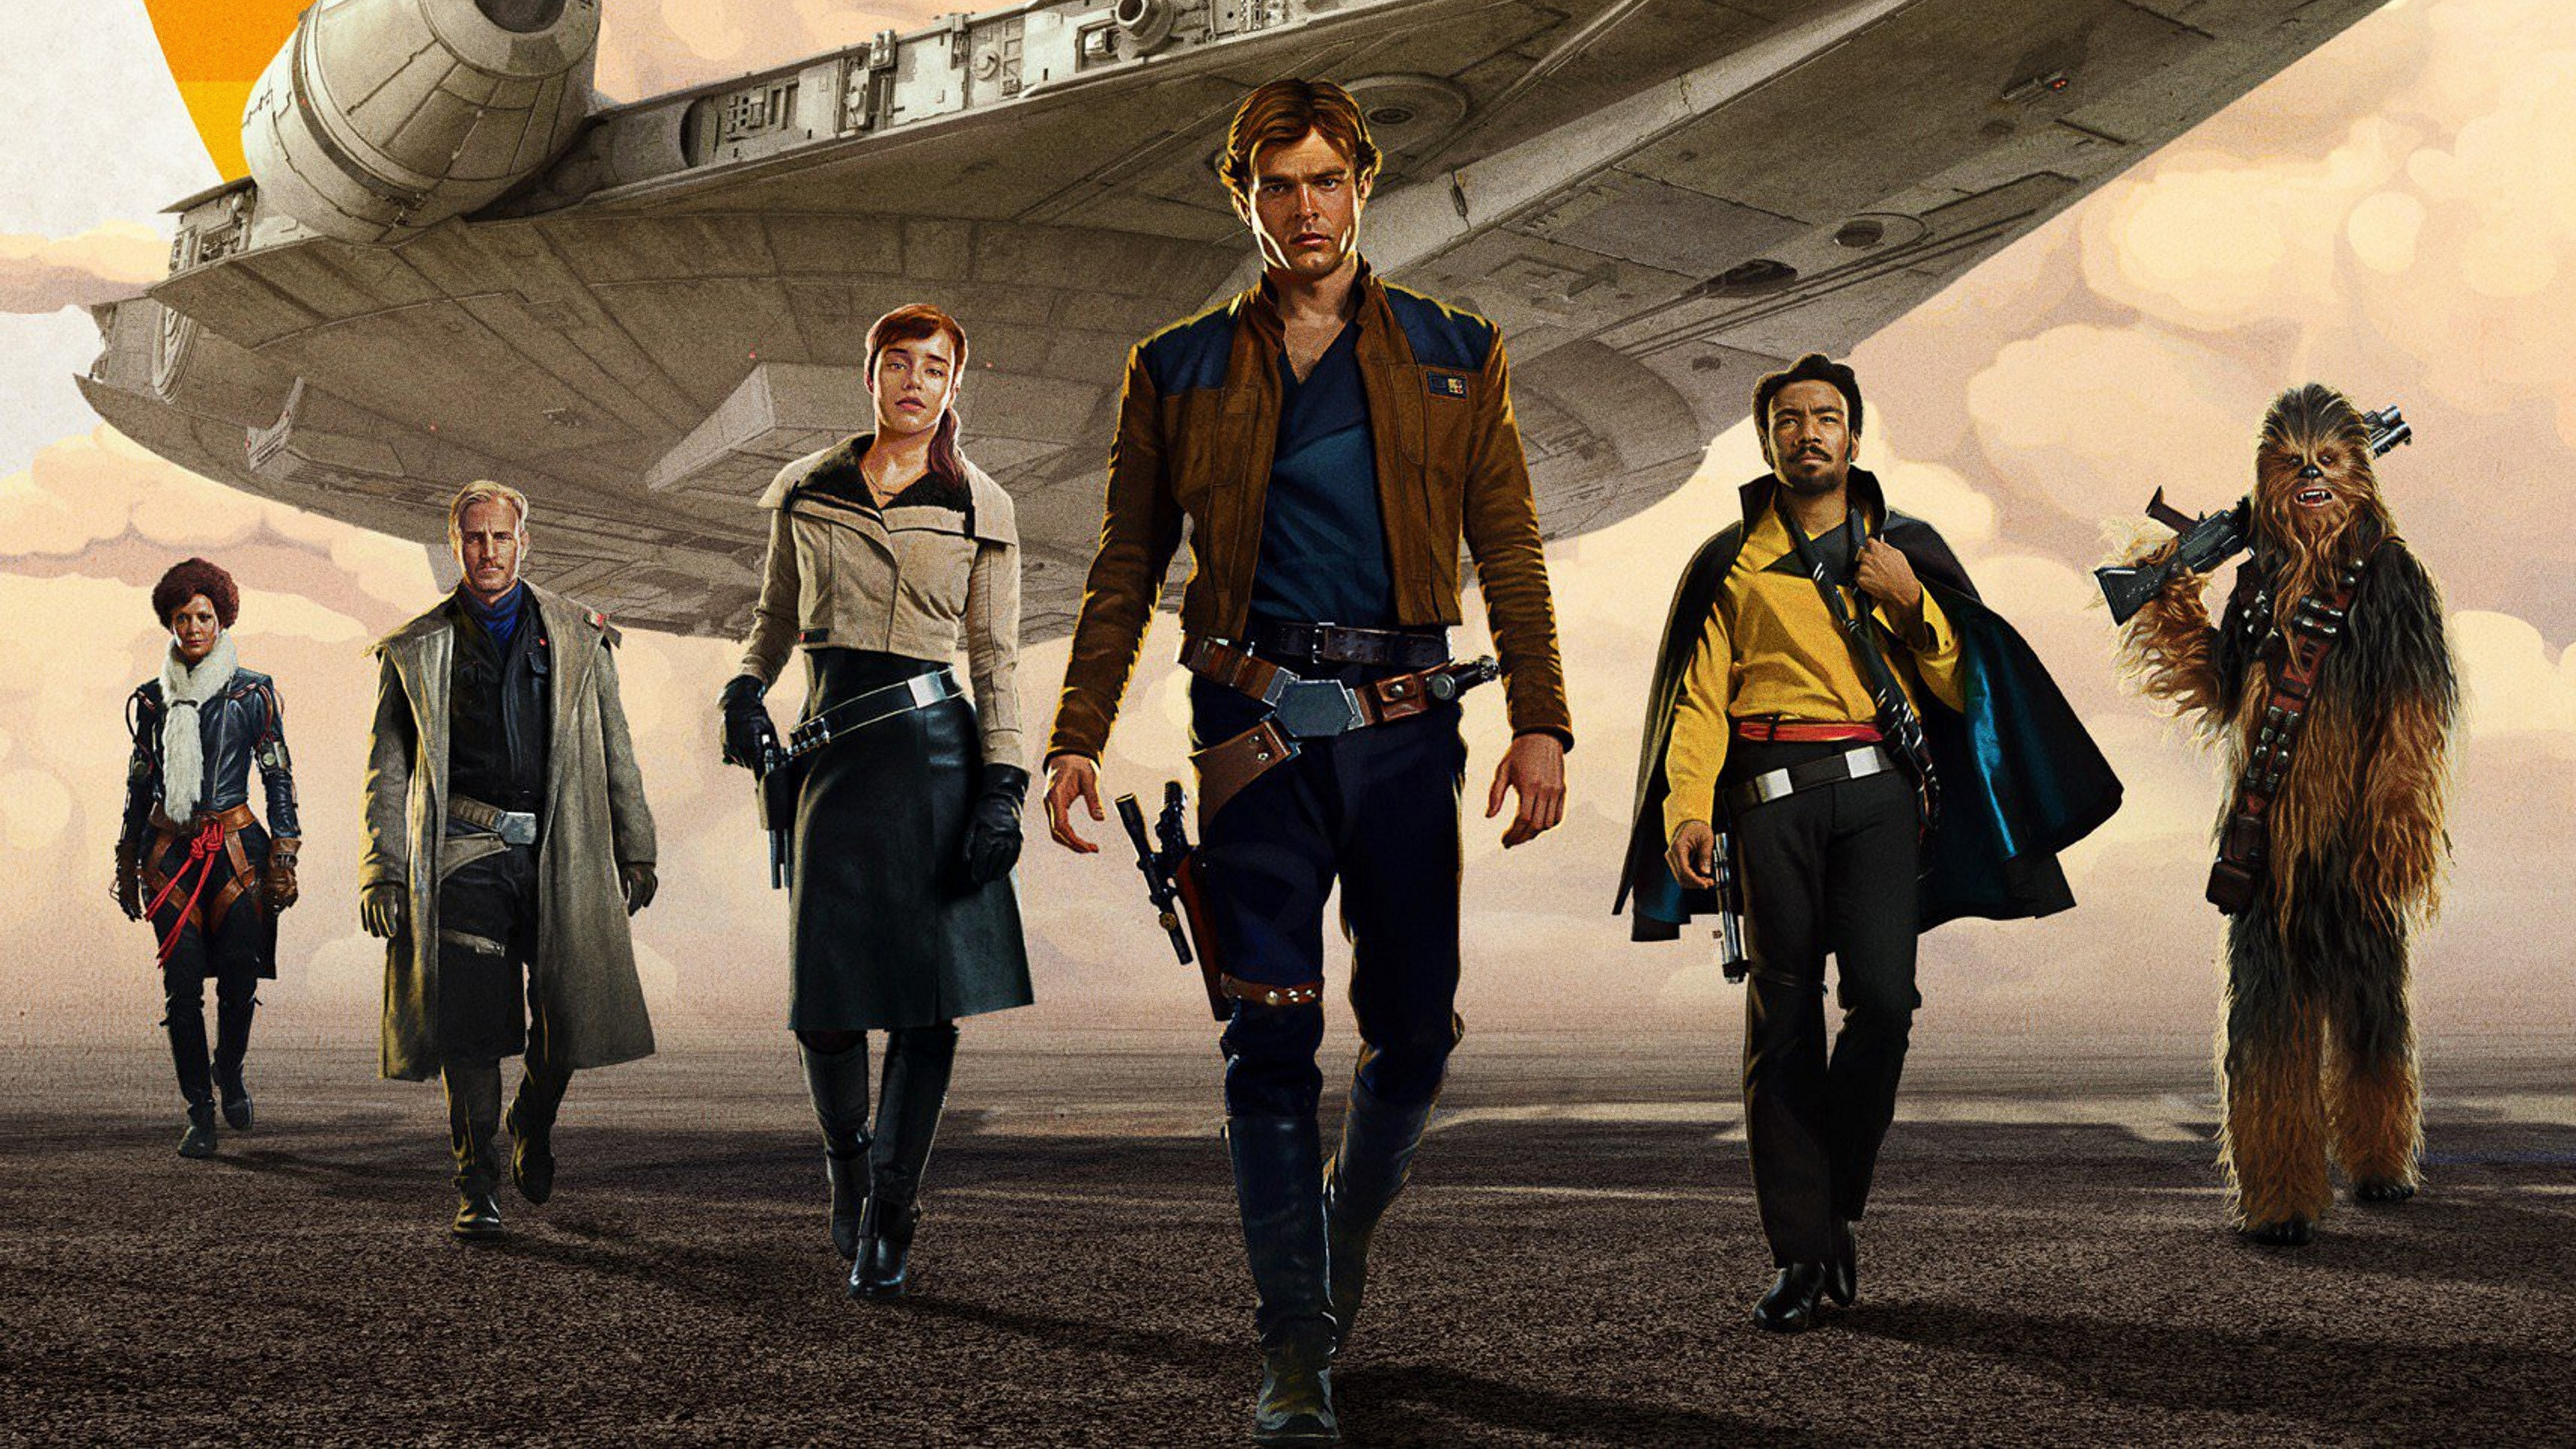 Solo A Star Wars Story , HD Wallpaper & Backgrounds